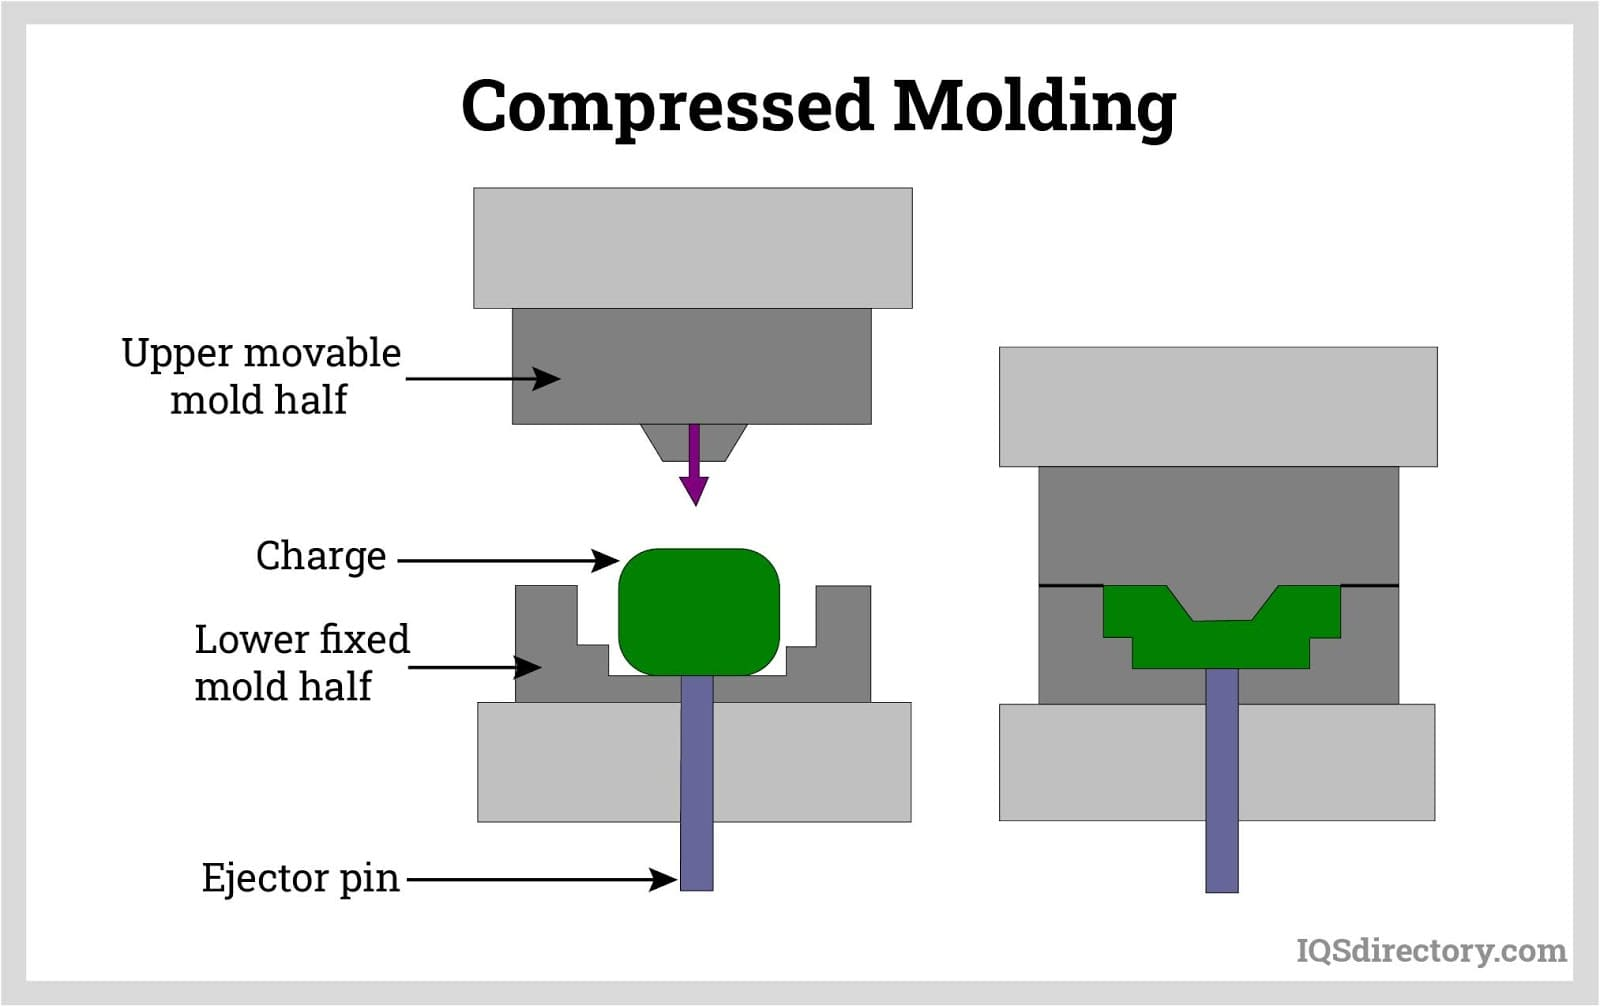 Compressed Molding